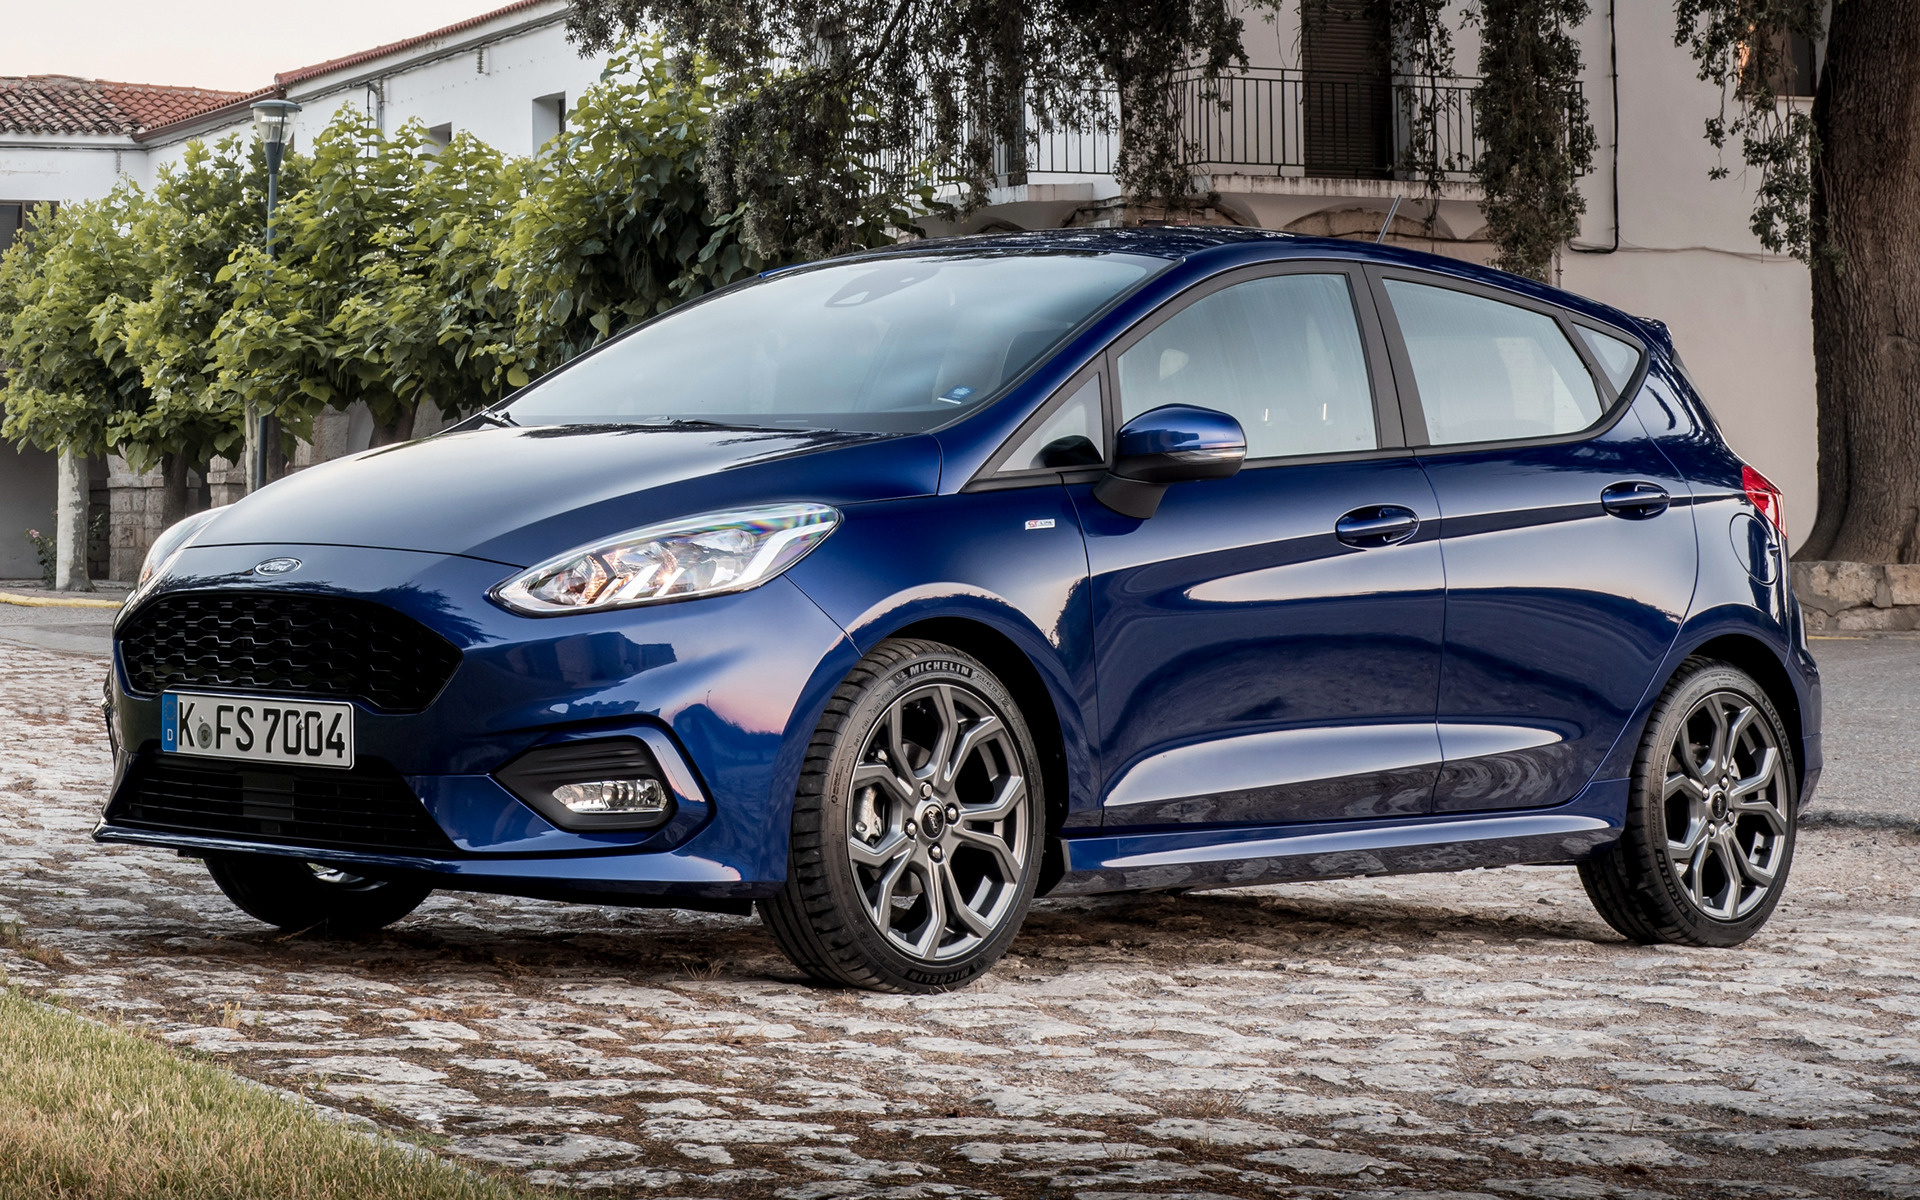 ford fiesta st line 5 door 2017 wallpapers and hd images. Black Bedroom Furniture Sets. Home Design Ideas